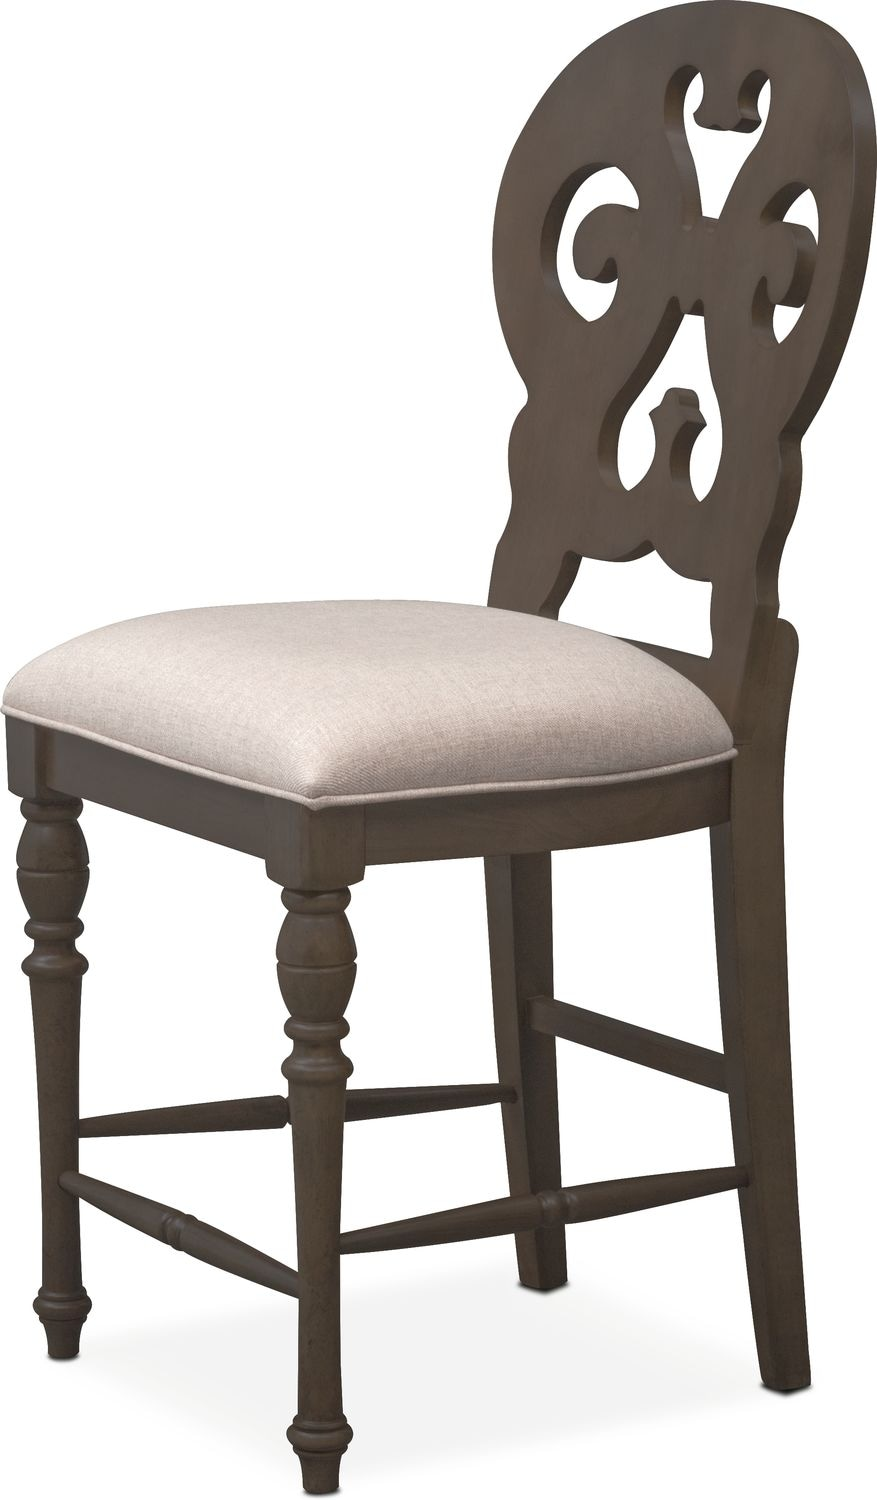 Charleston Counter Height Scroll Back Stool Gray Value